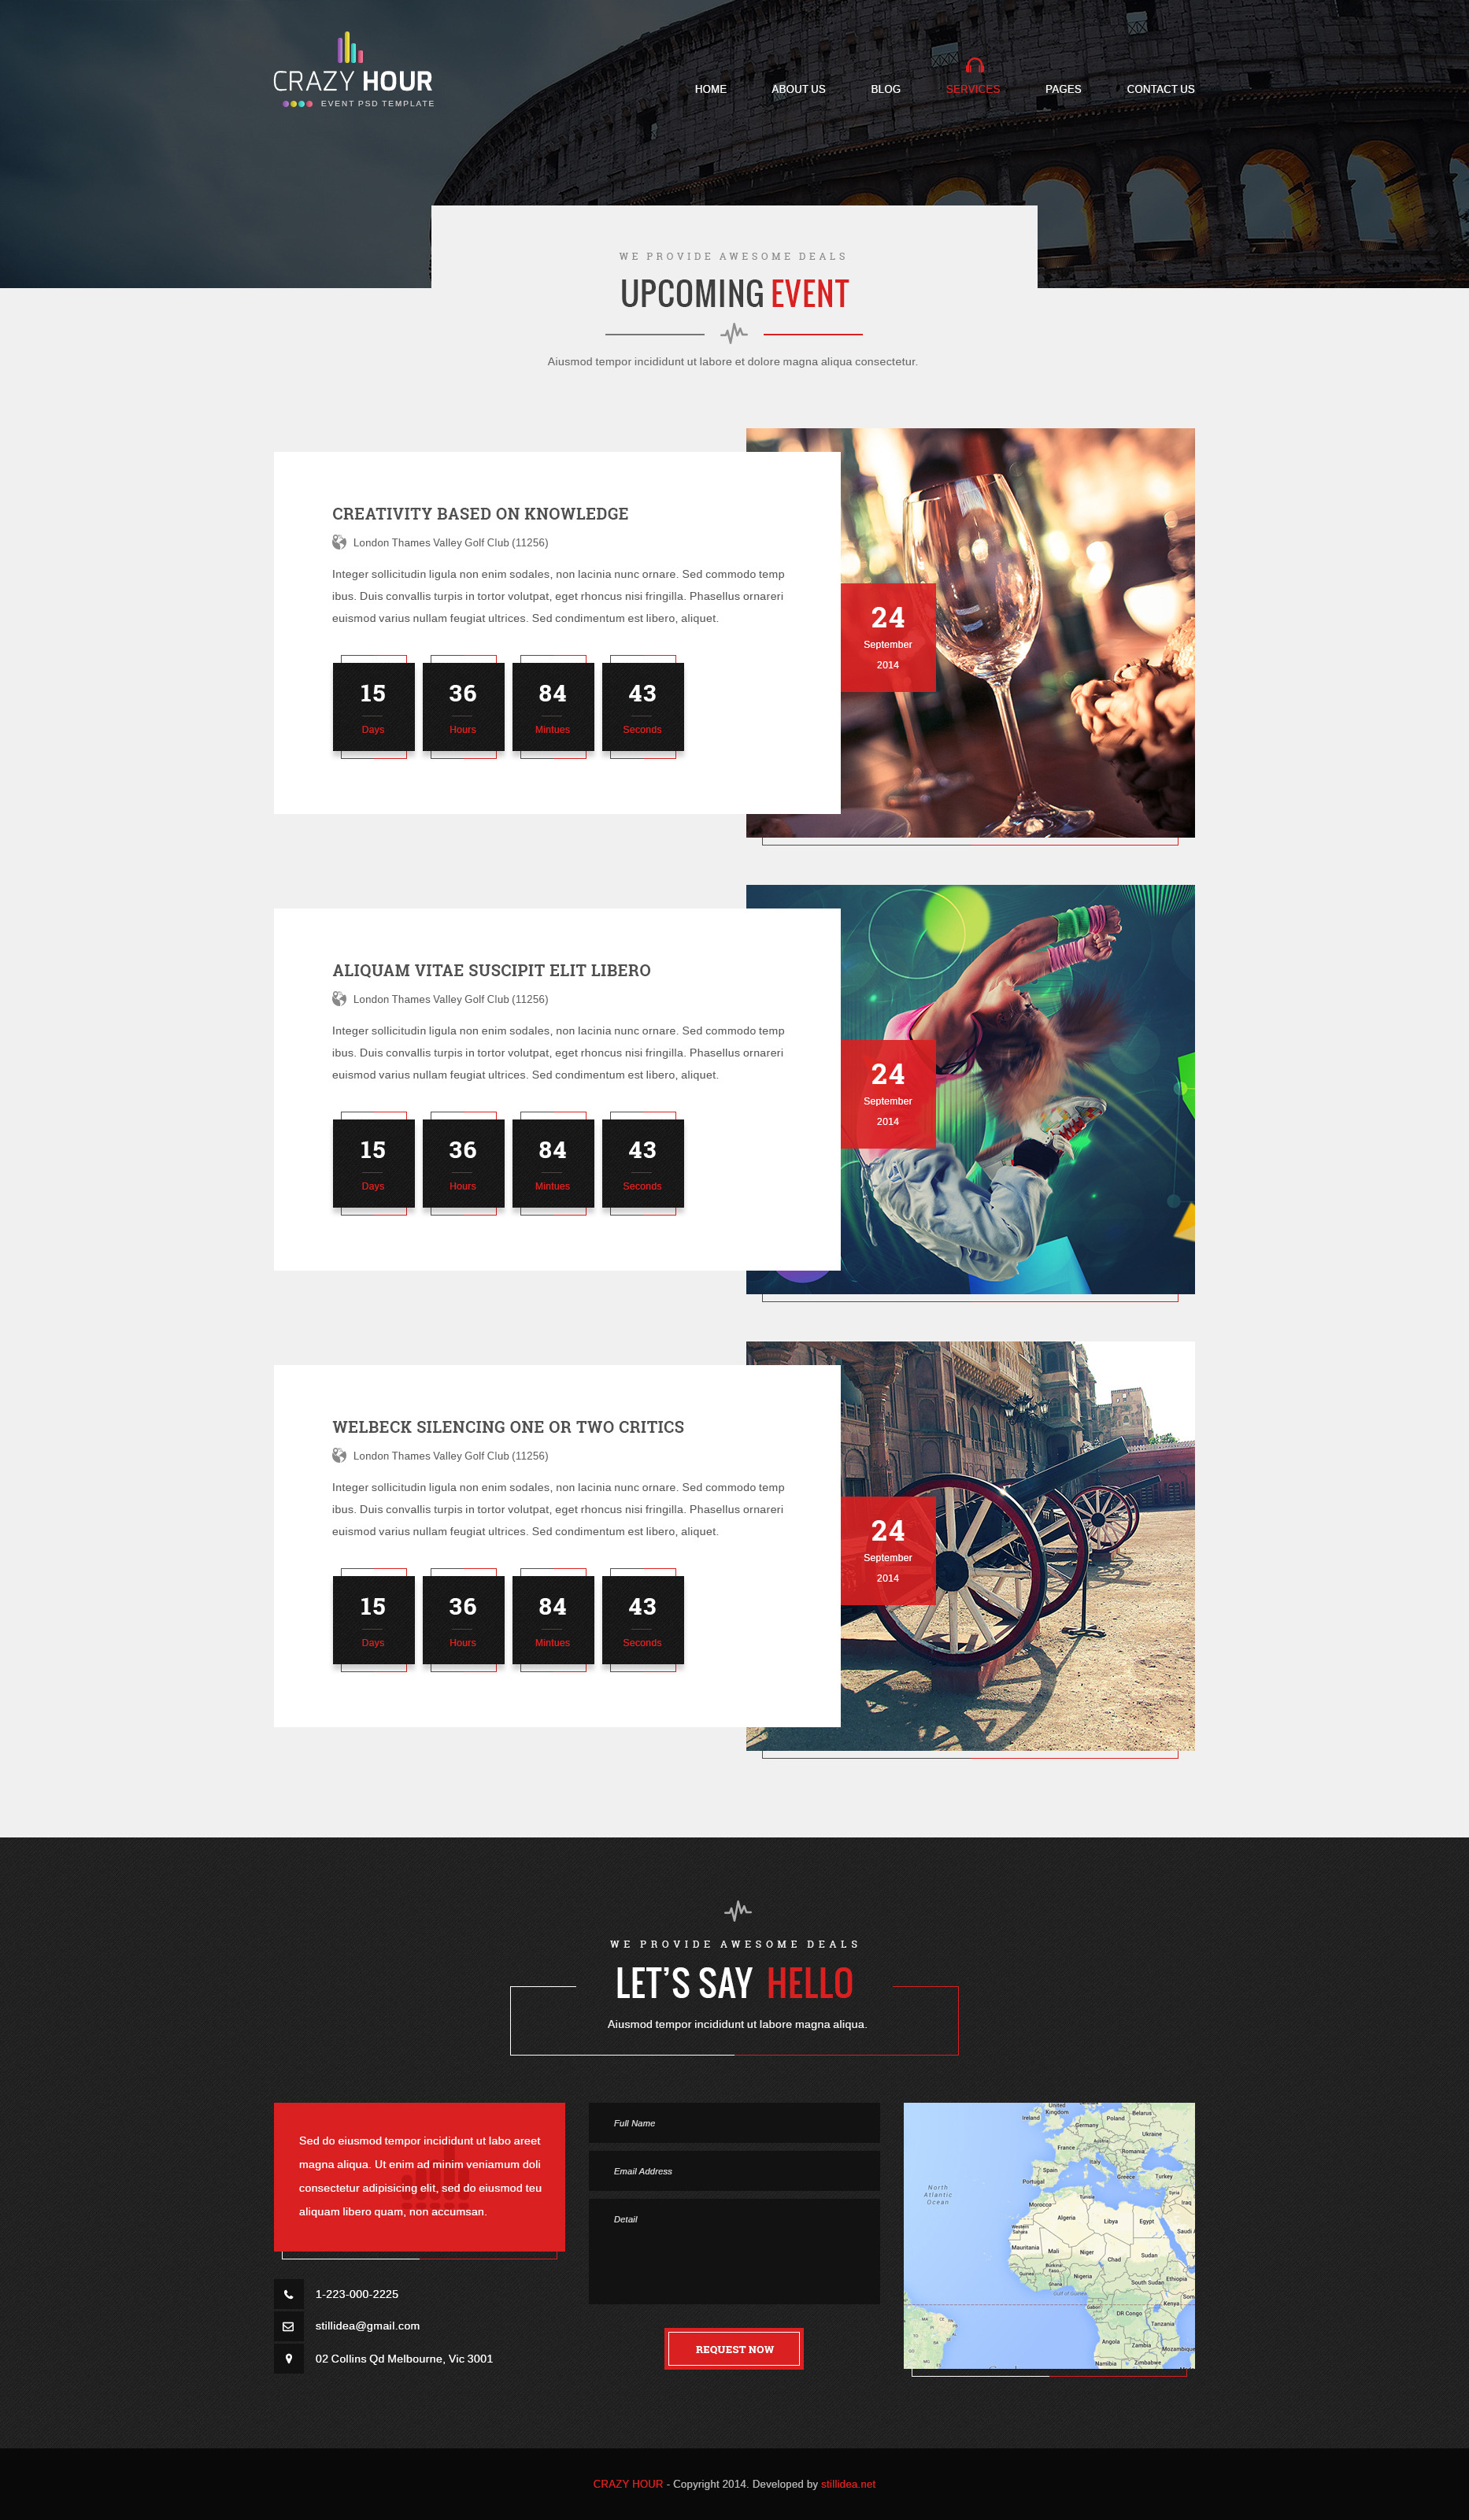 Crazy hour event management psd template by stillidea themeforest crazy hour event management psd template pronofoot35fo Image collections